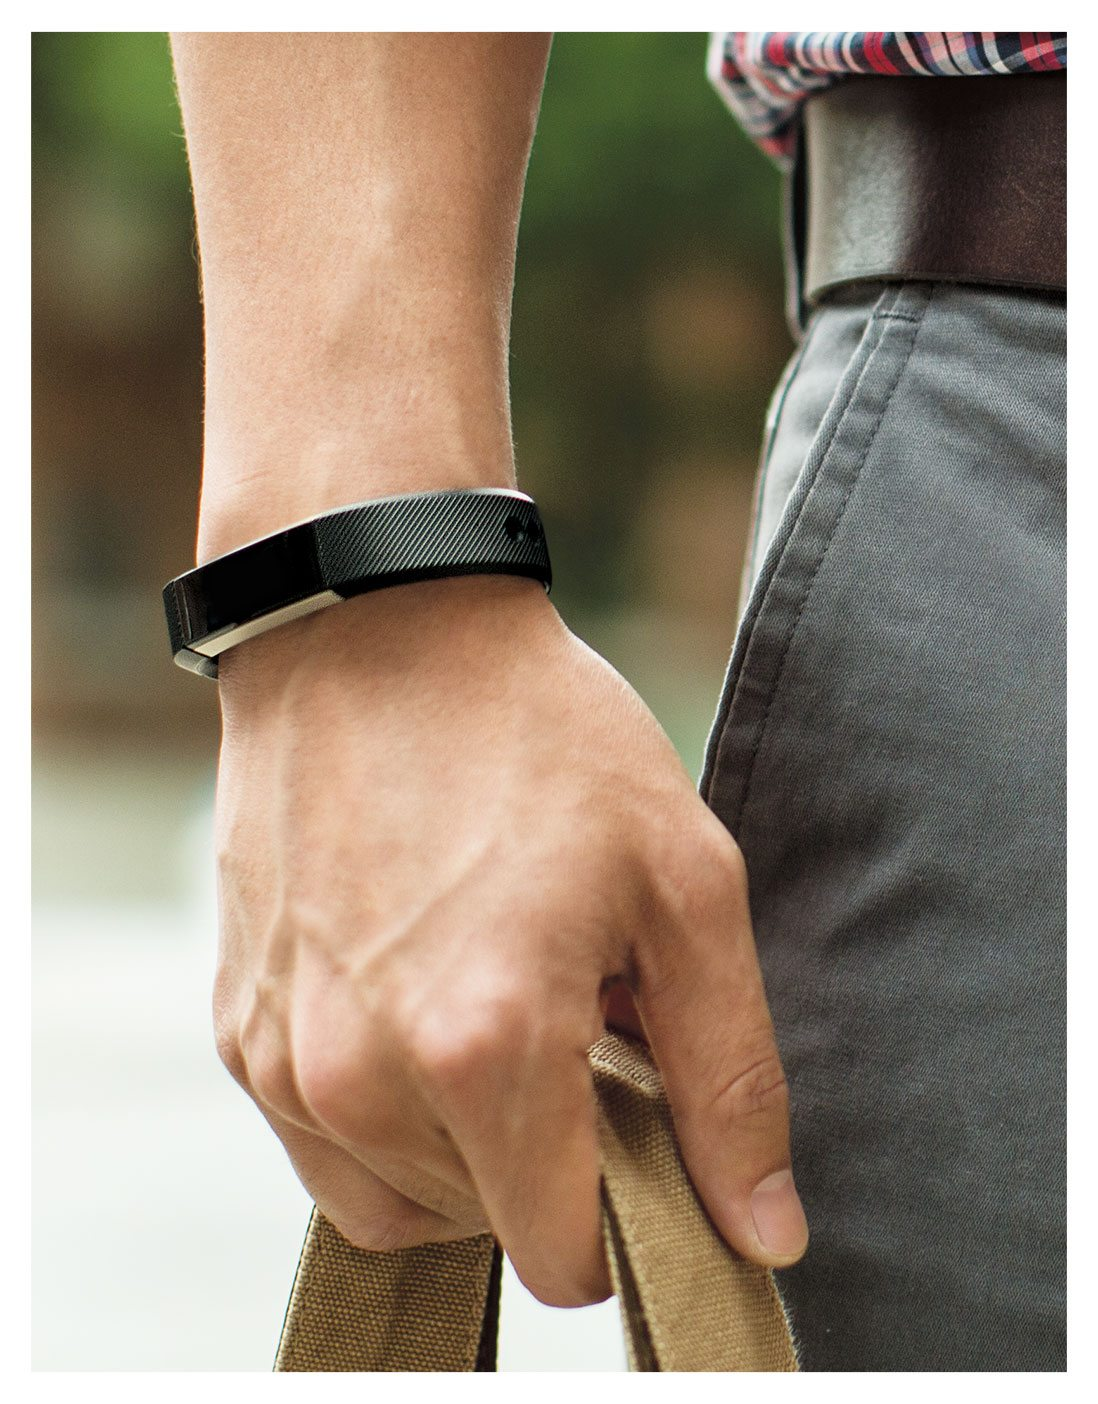 fitbit launches new budget wearable the fitbit alta 3 - Fitbit launches new budget wearable - the Fitbit Alta